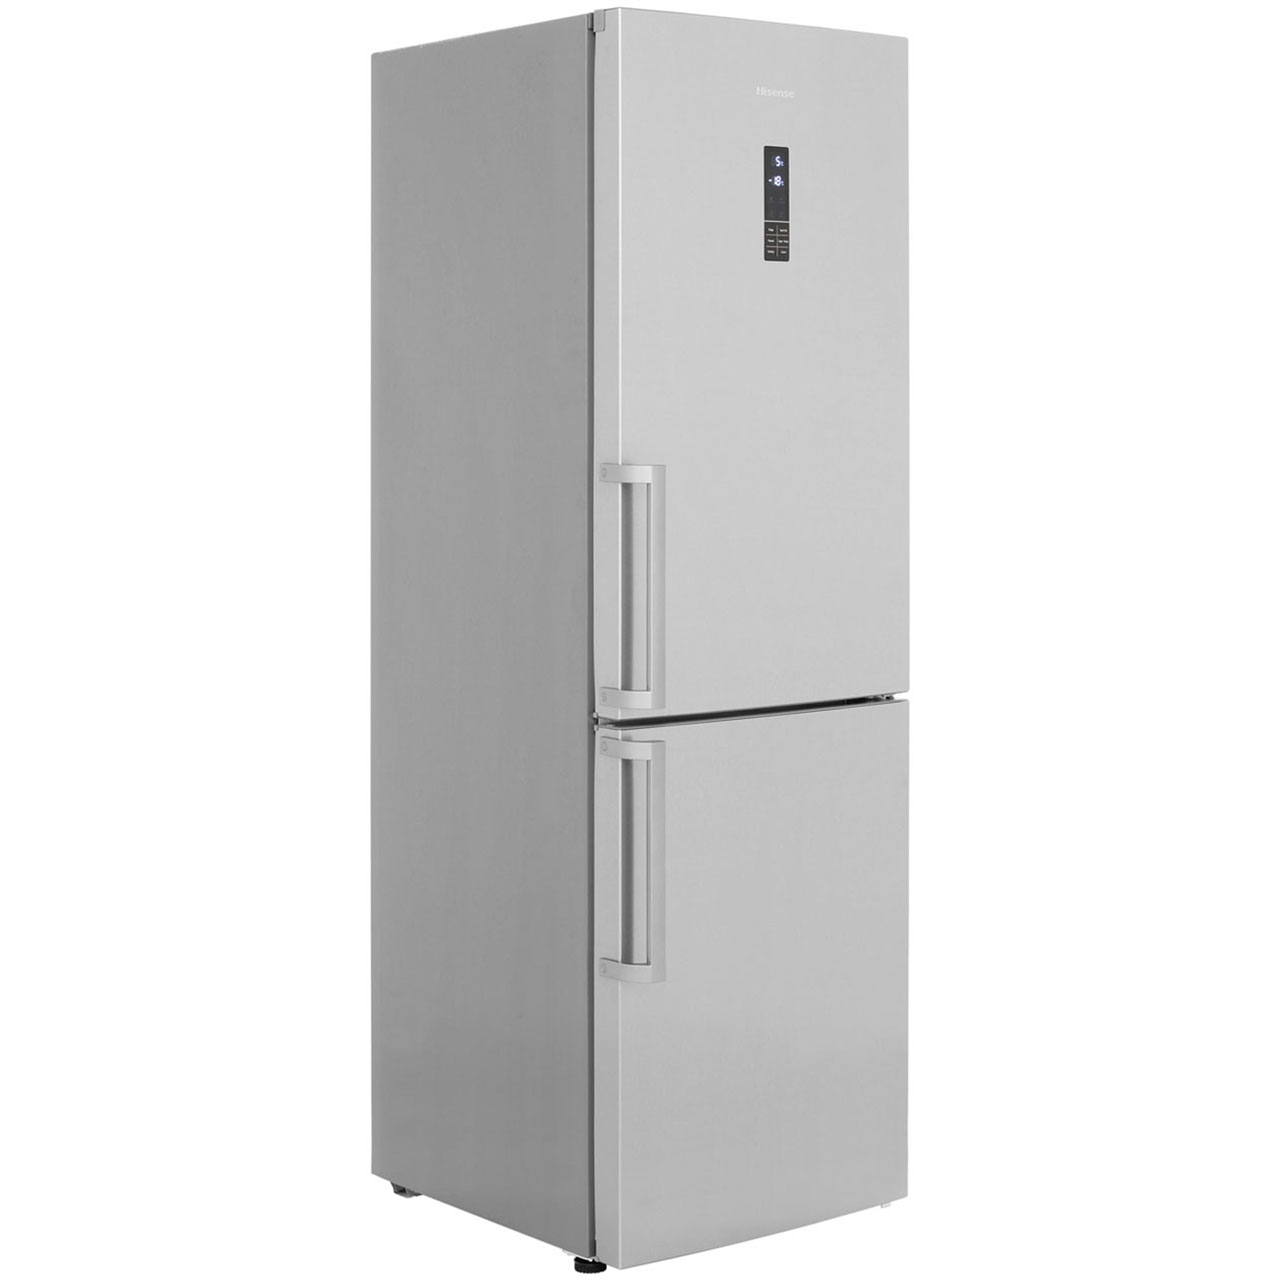 Hisense RB403N4AC2 Free Standing Fridge Freezer Frost Free in Stainless Steel Look